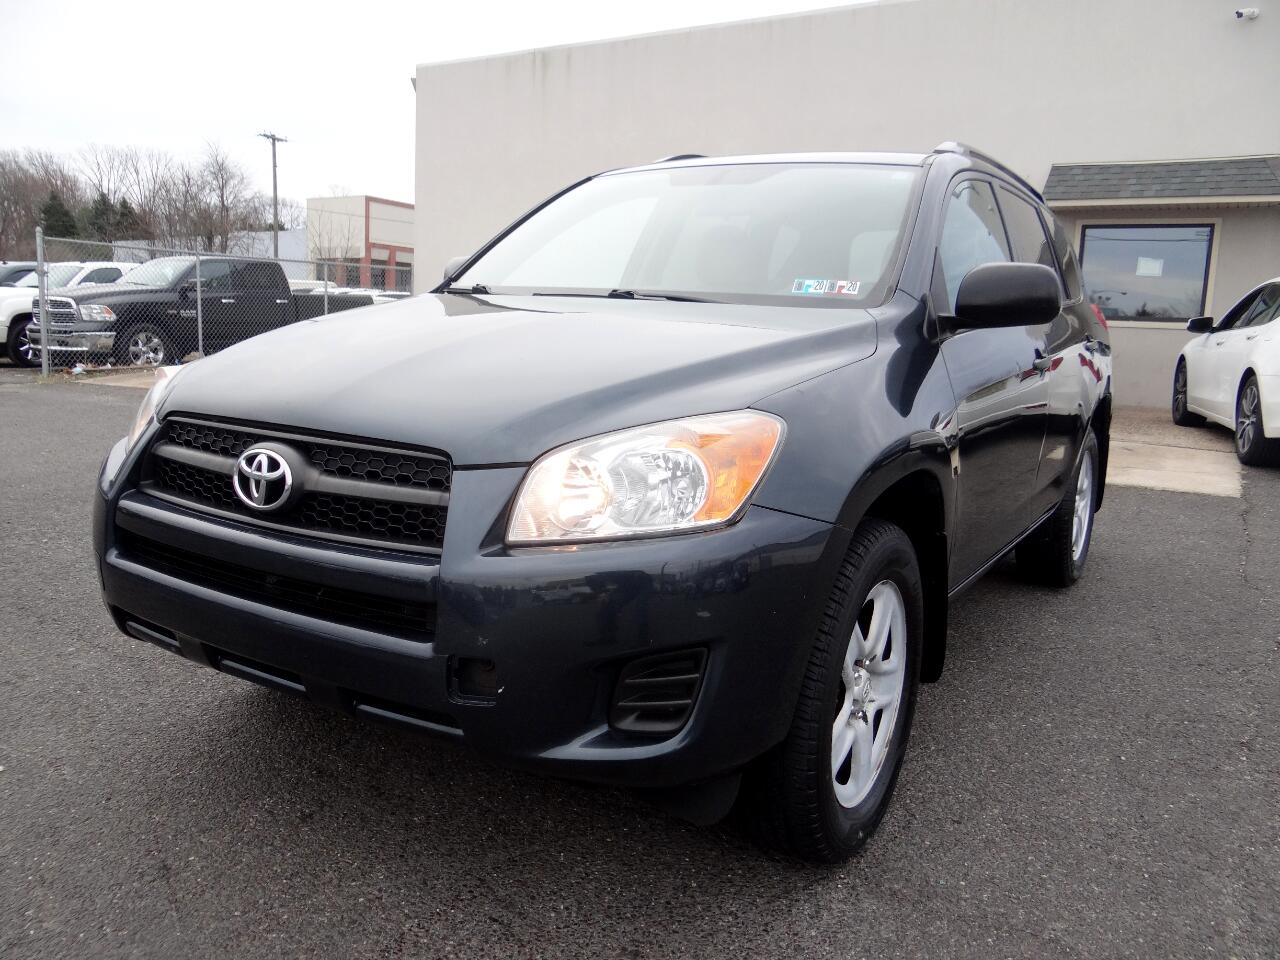 Toyota RAV4 4WD 4dr 4-cyl 4-Spd AT (Natl) 2010